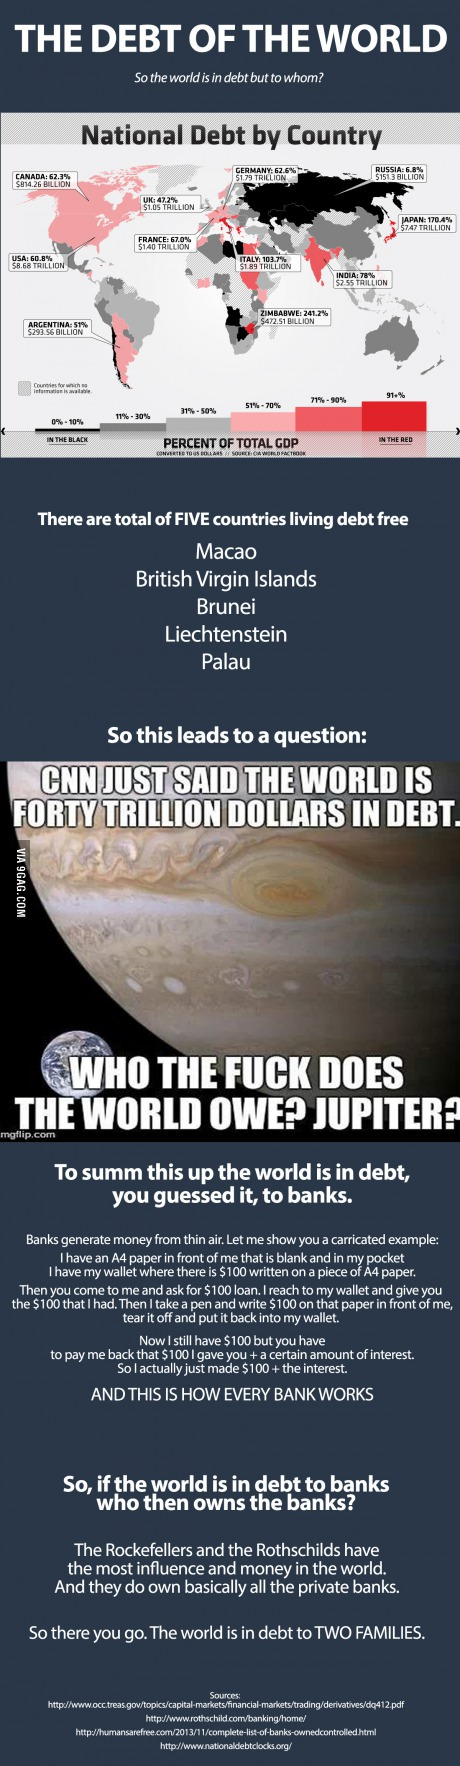 debt of the world